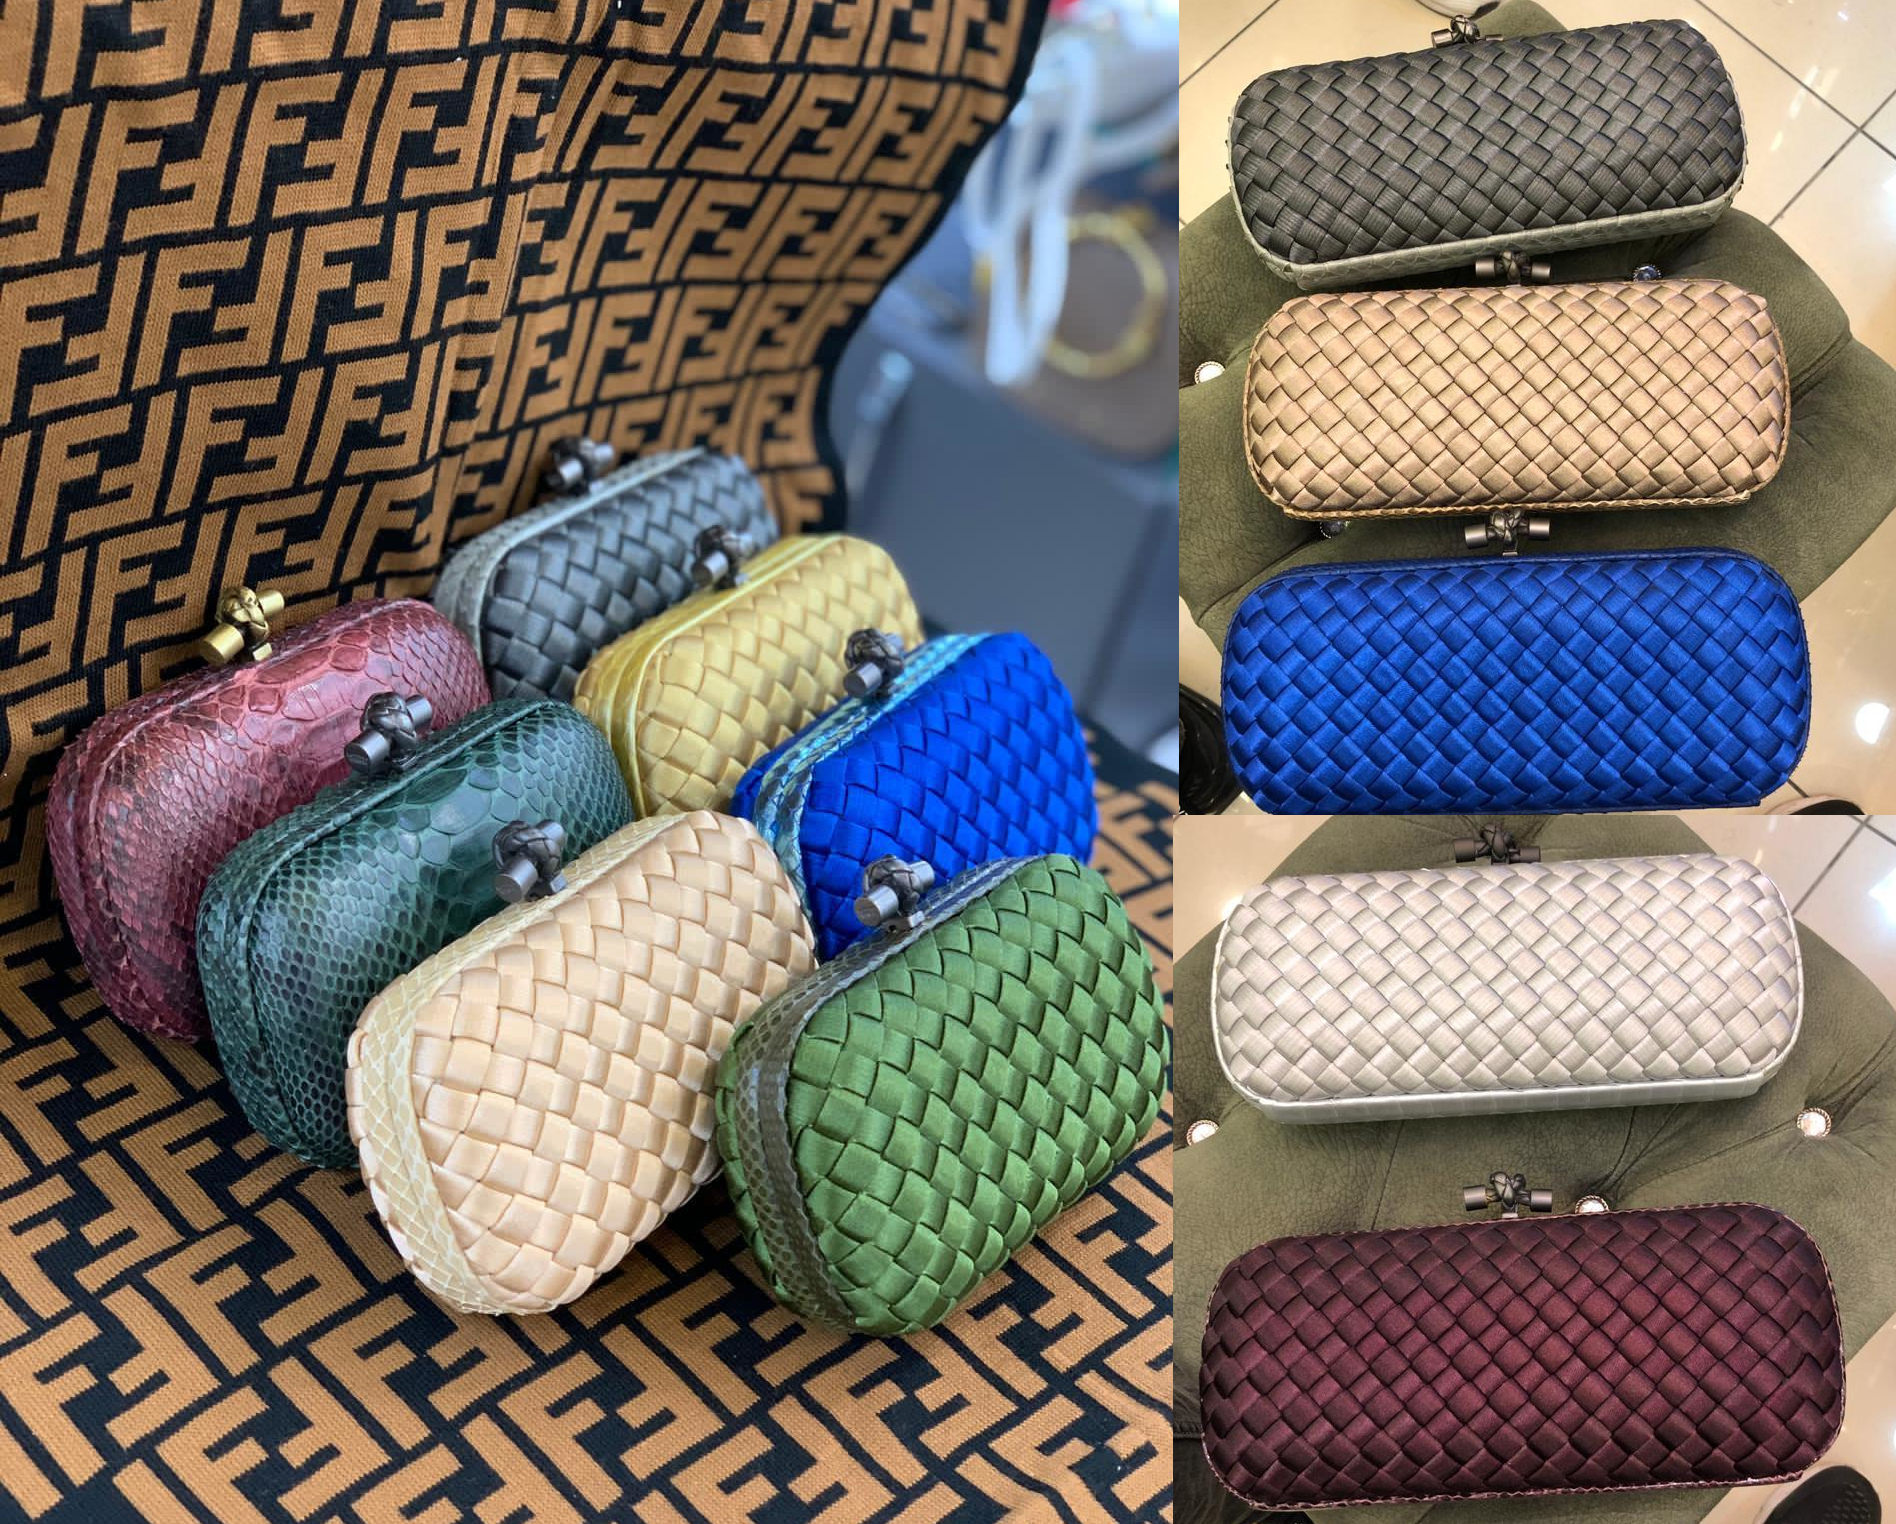 Fendi's tiny clutch and case in the woven leather is so versatile and the colors are wonderful to make any outfit stand out.